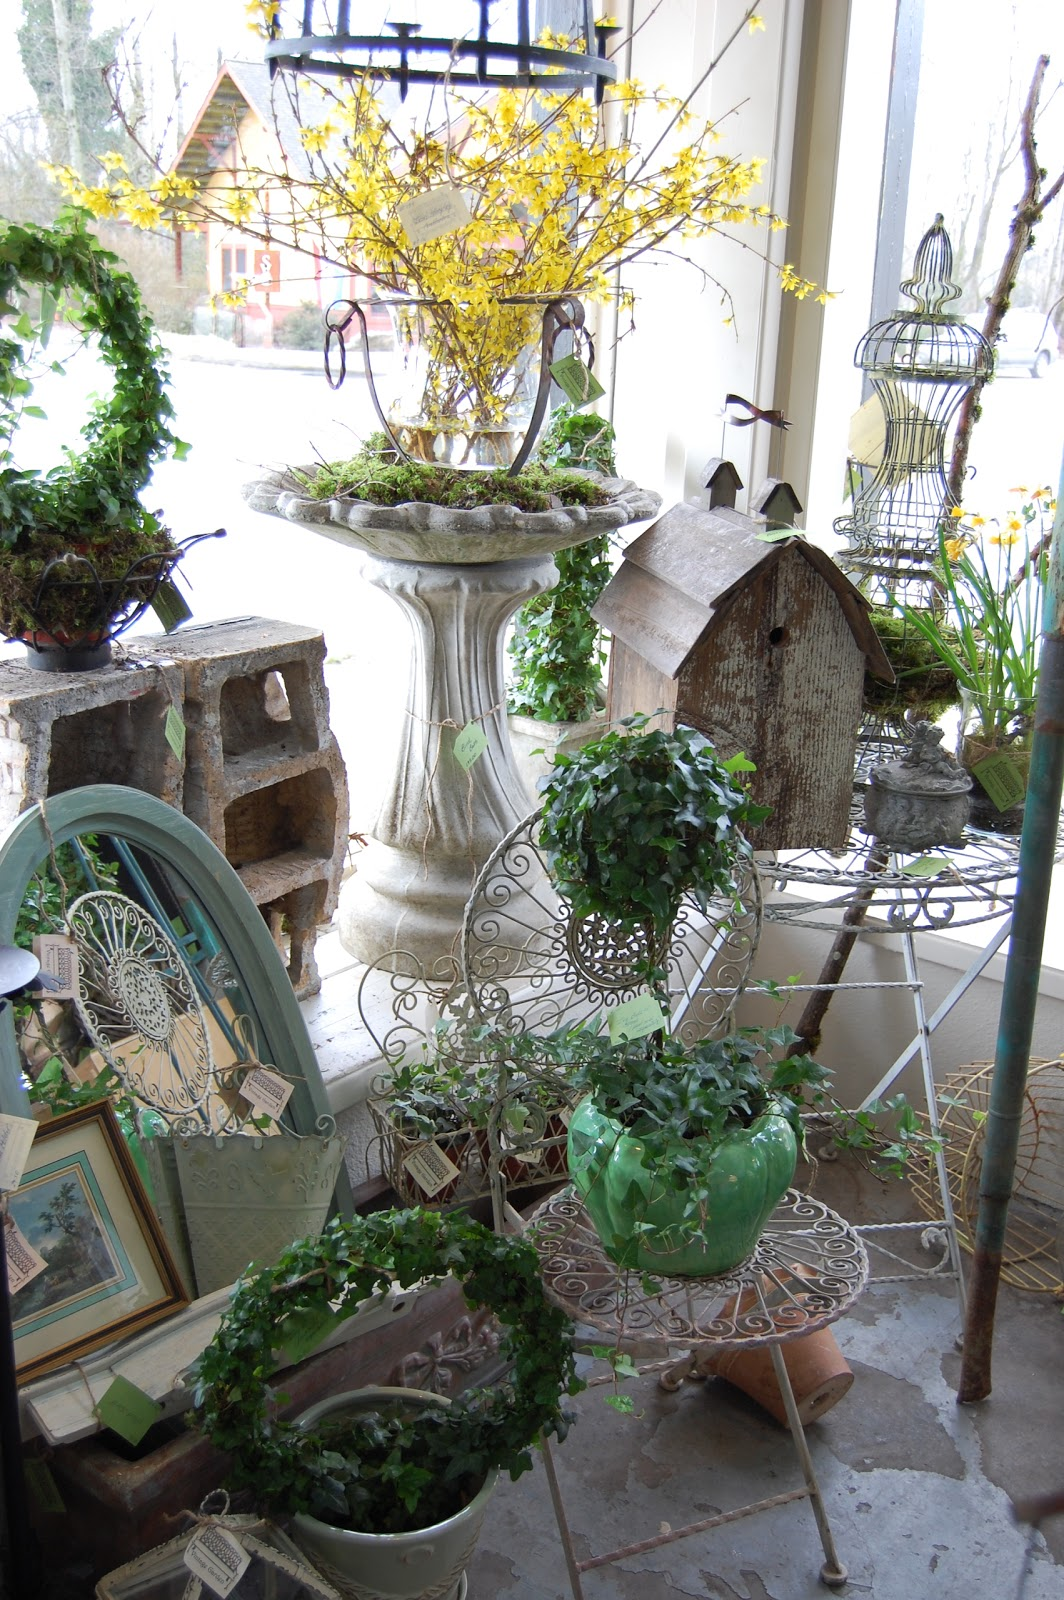 1000+ images about Garden Centre Display Ideas on Pinterest